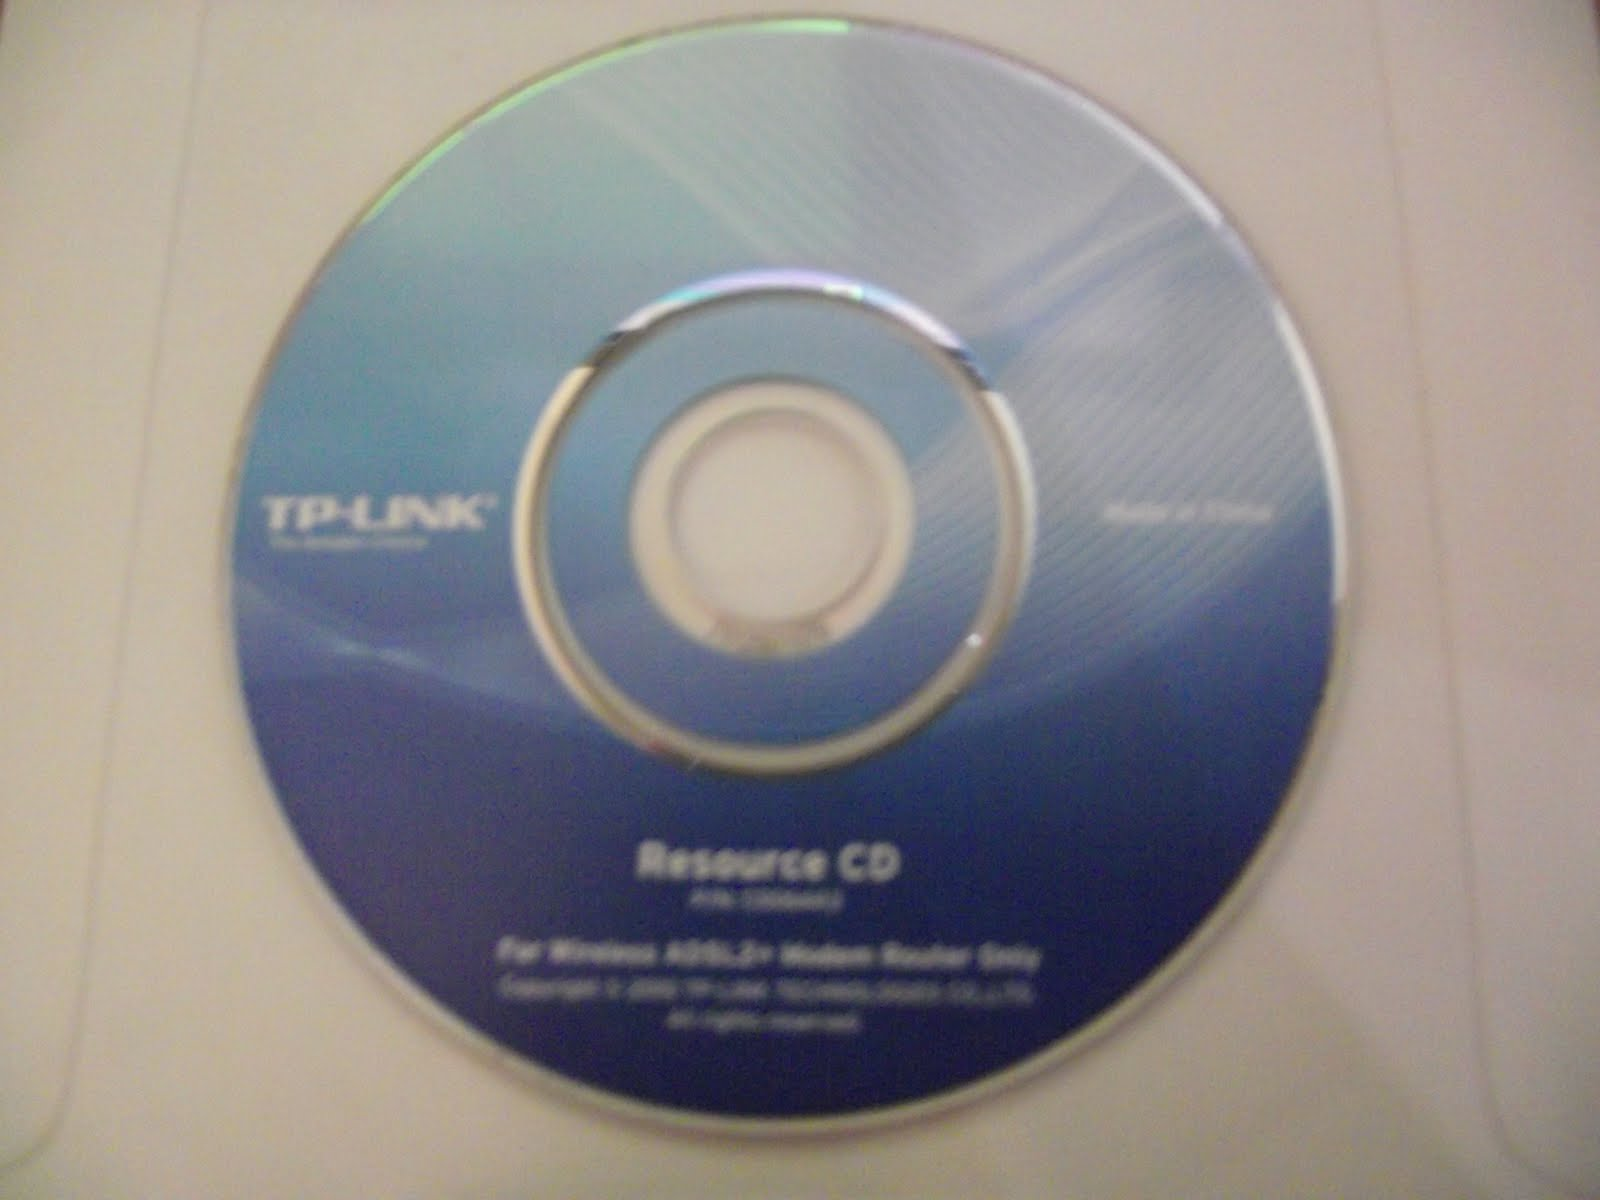 DFE-528TX WINDOWS 7 DRIVER DOWNLOAD